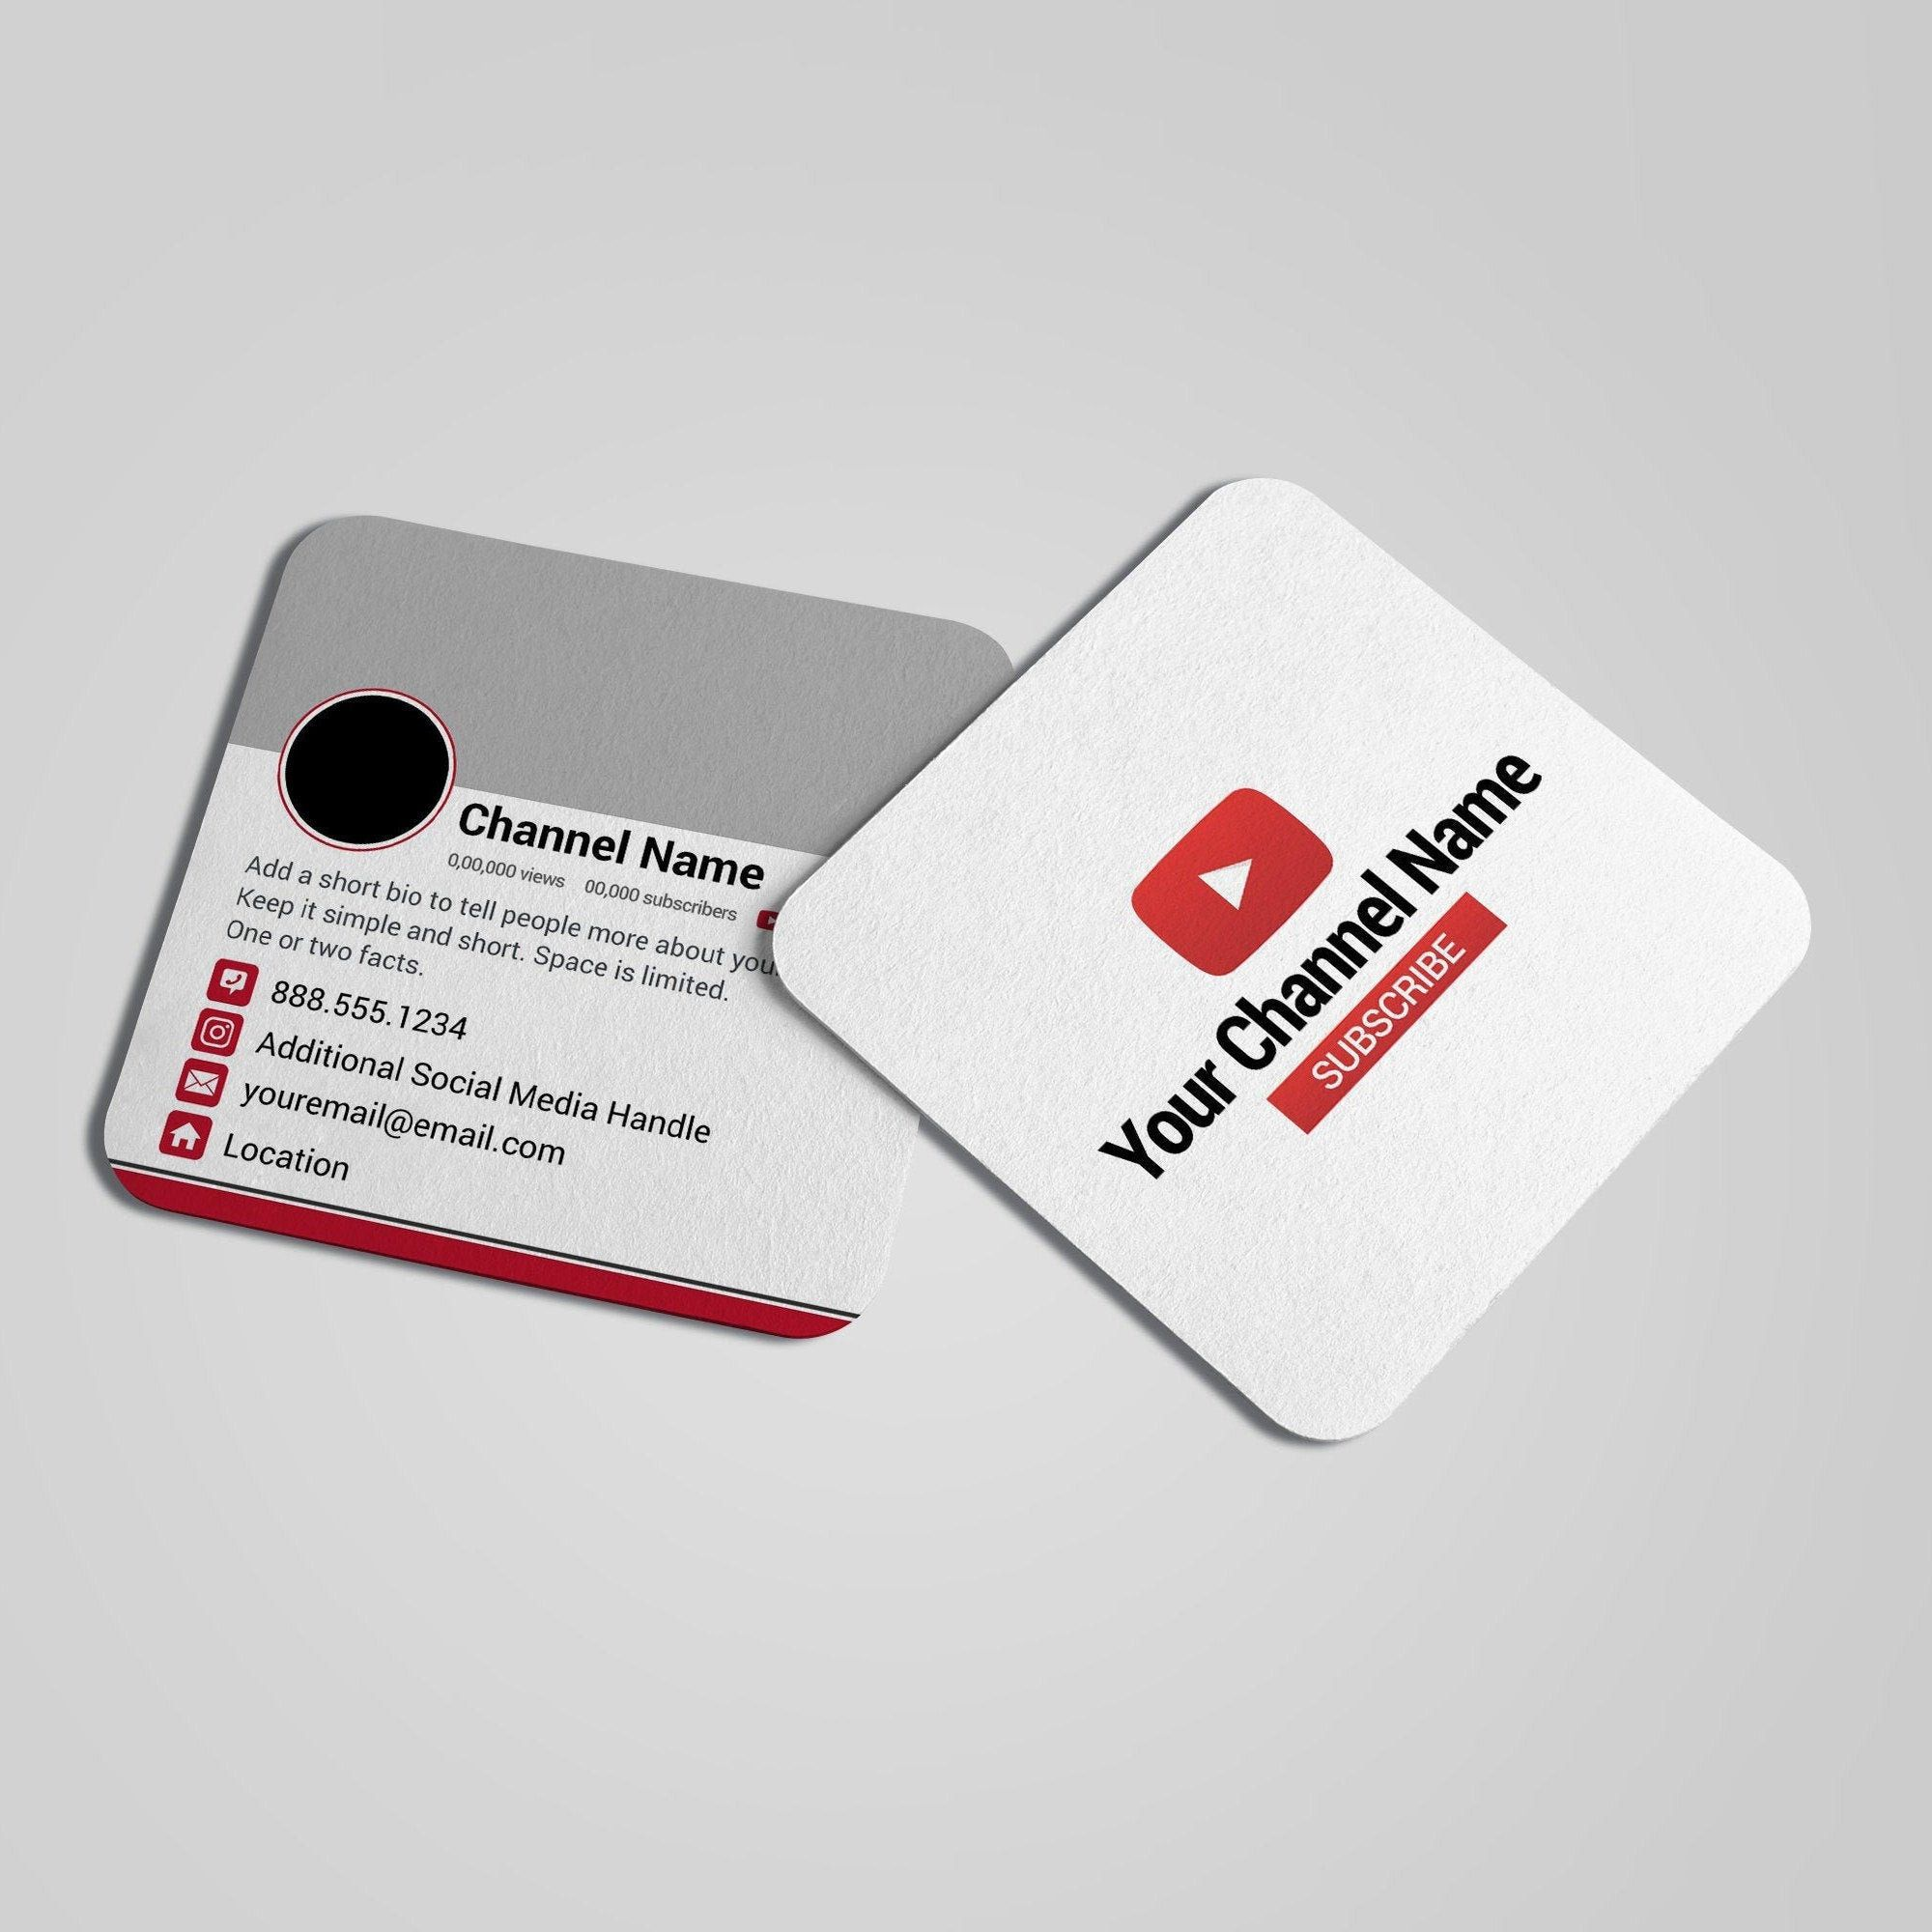 Youtube Social Media Marketing Business Cards Social Media Business Cards Marketing Business Card Graphic Design Business Card